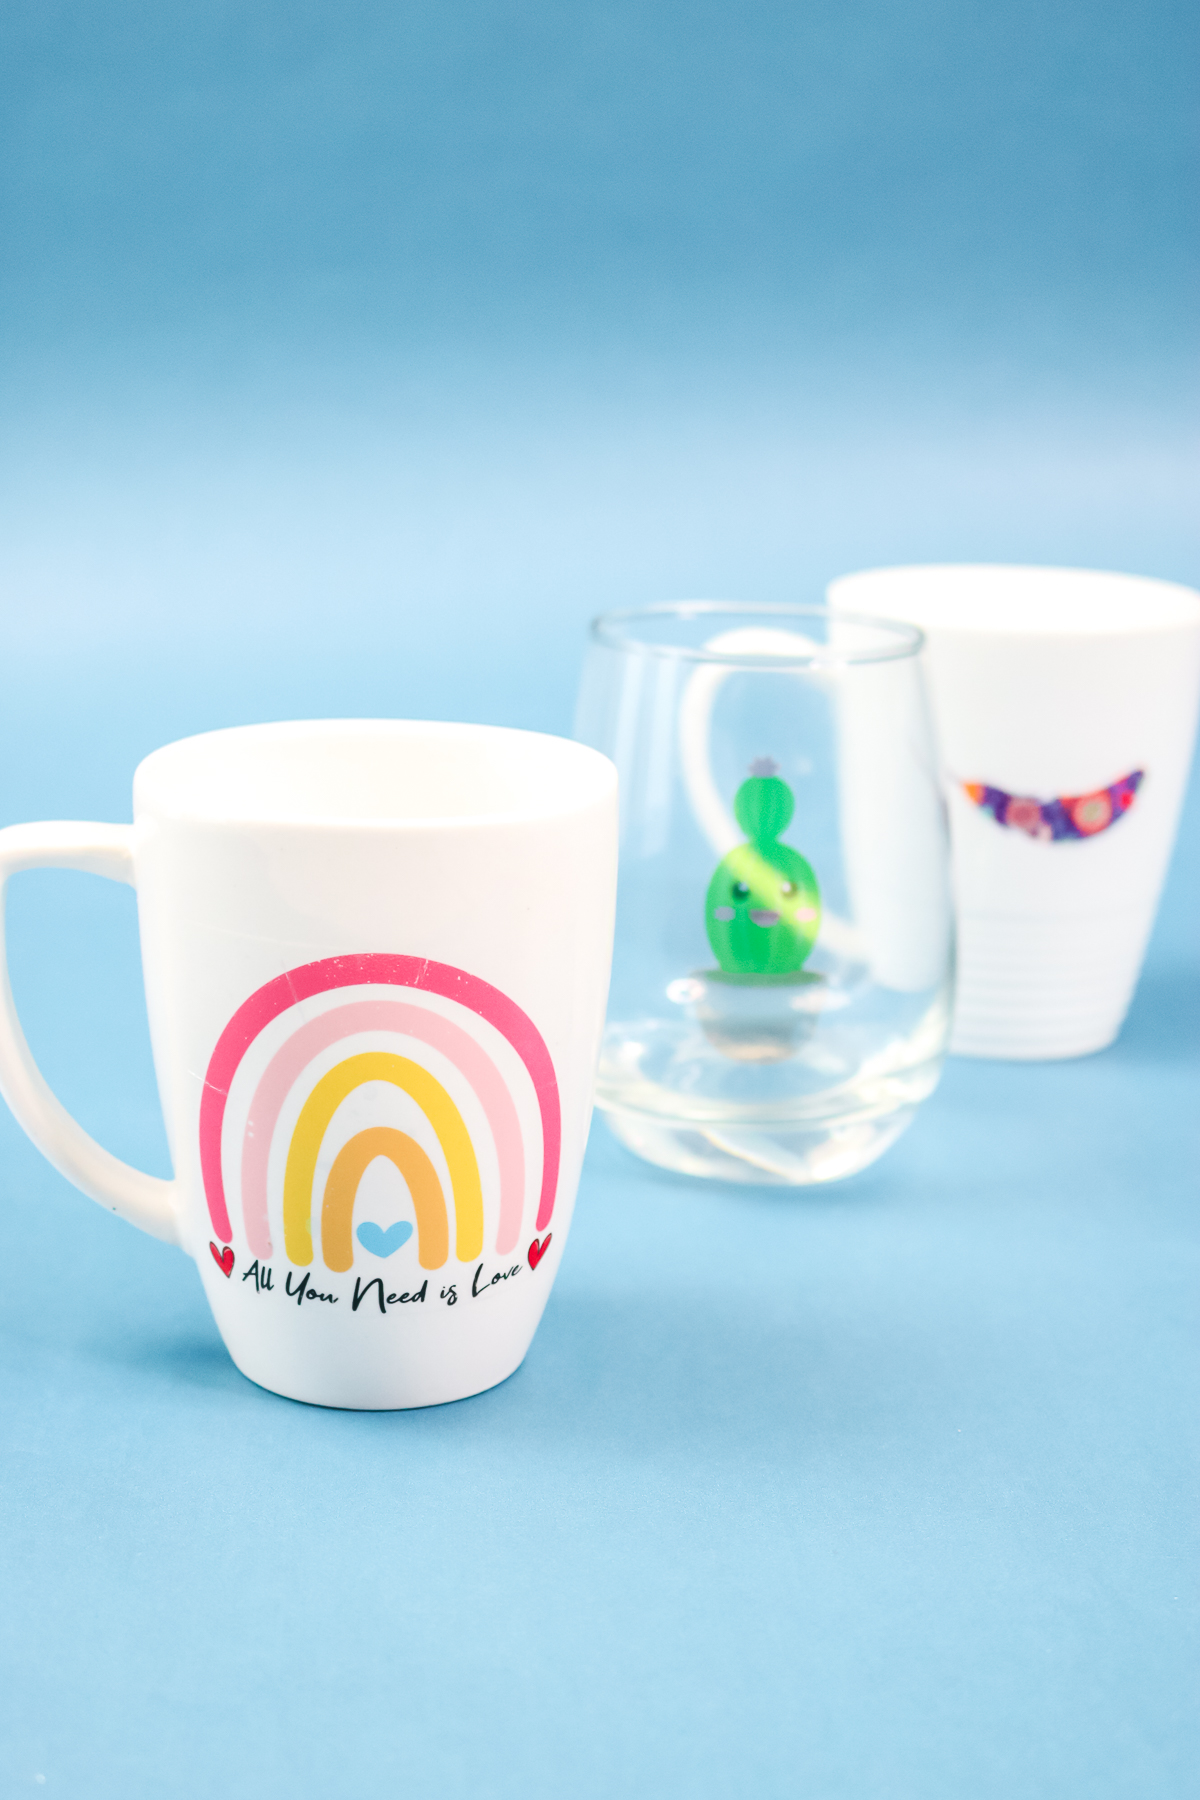 mugs and wine glasses with decals applied